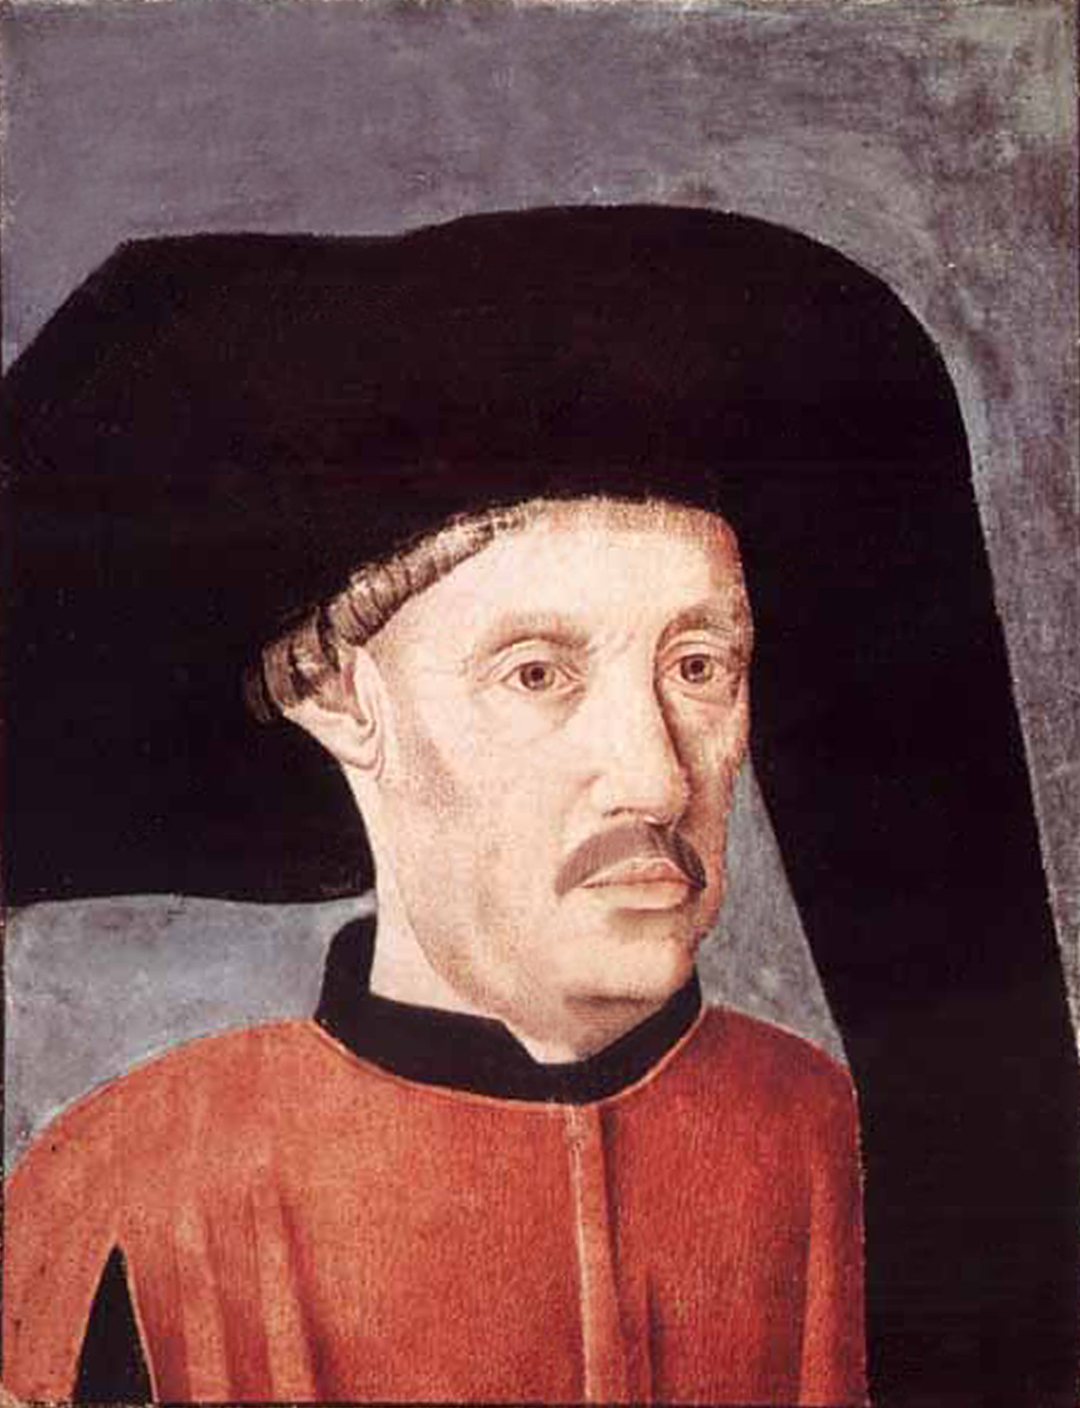 "Portret van Prins Hendrik de Zeevaarder (digitaal bijgewerkt) op het voorblad van het boek ""Crónicas dos Feitos de Guiné"" door Gomes Eanes de Zurara in 1453. Nu in de Bibliothèque nationale de Paris. Bron: https://commons.wikimedia.org/wiki/File:Henry_the_Navigator_(Cronicas).jpg"